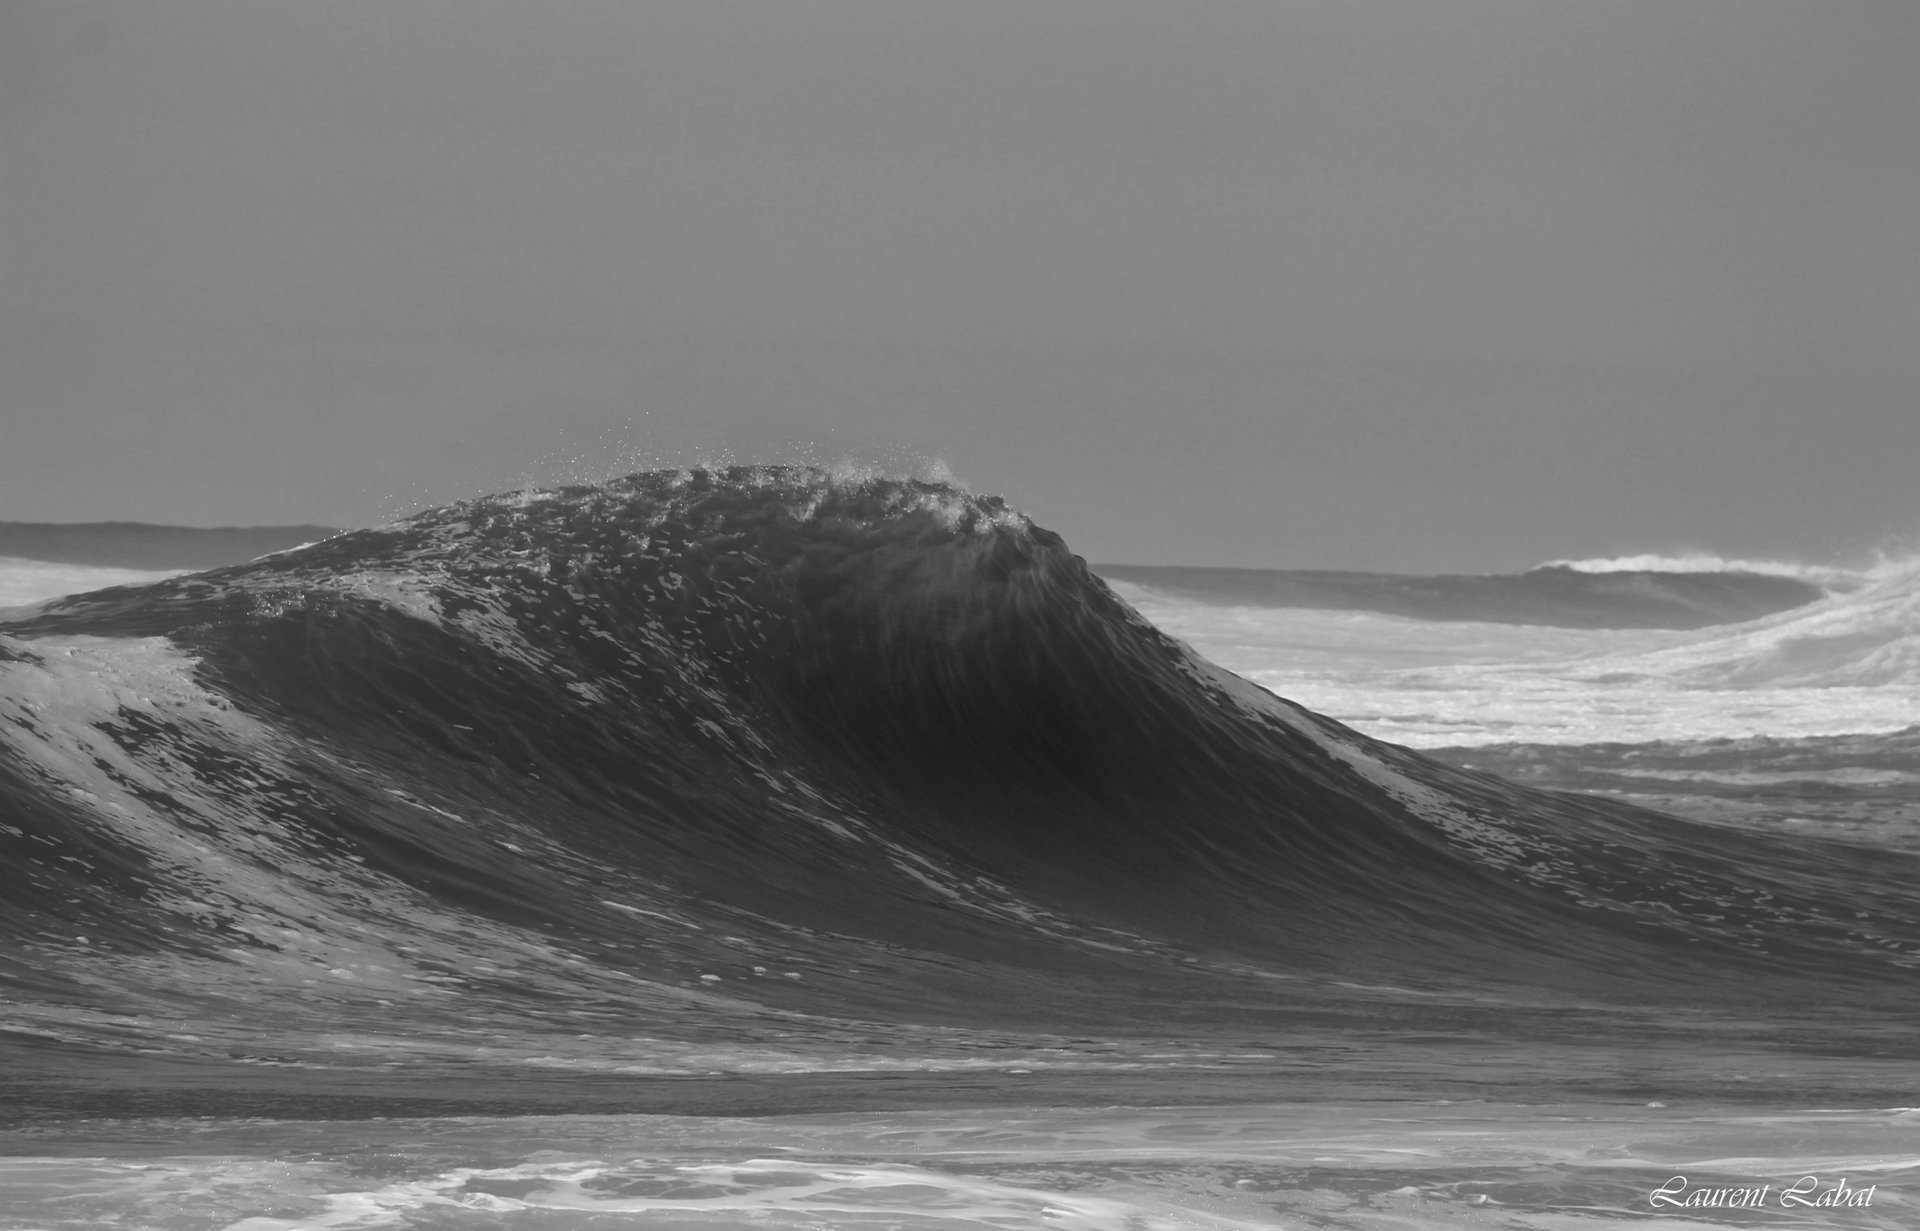 laurent labat's photo of Hossegor (La Graviere)